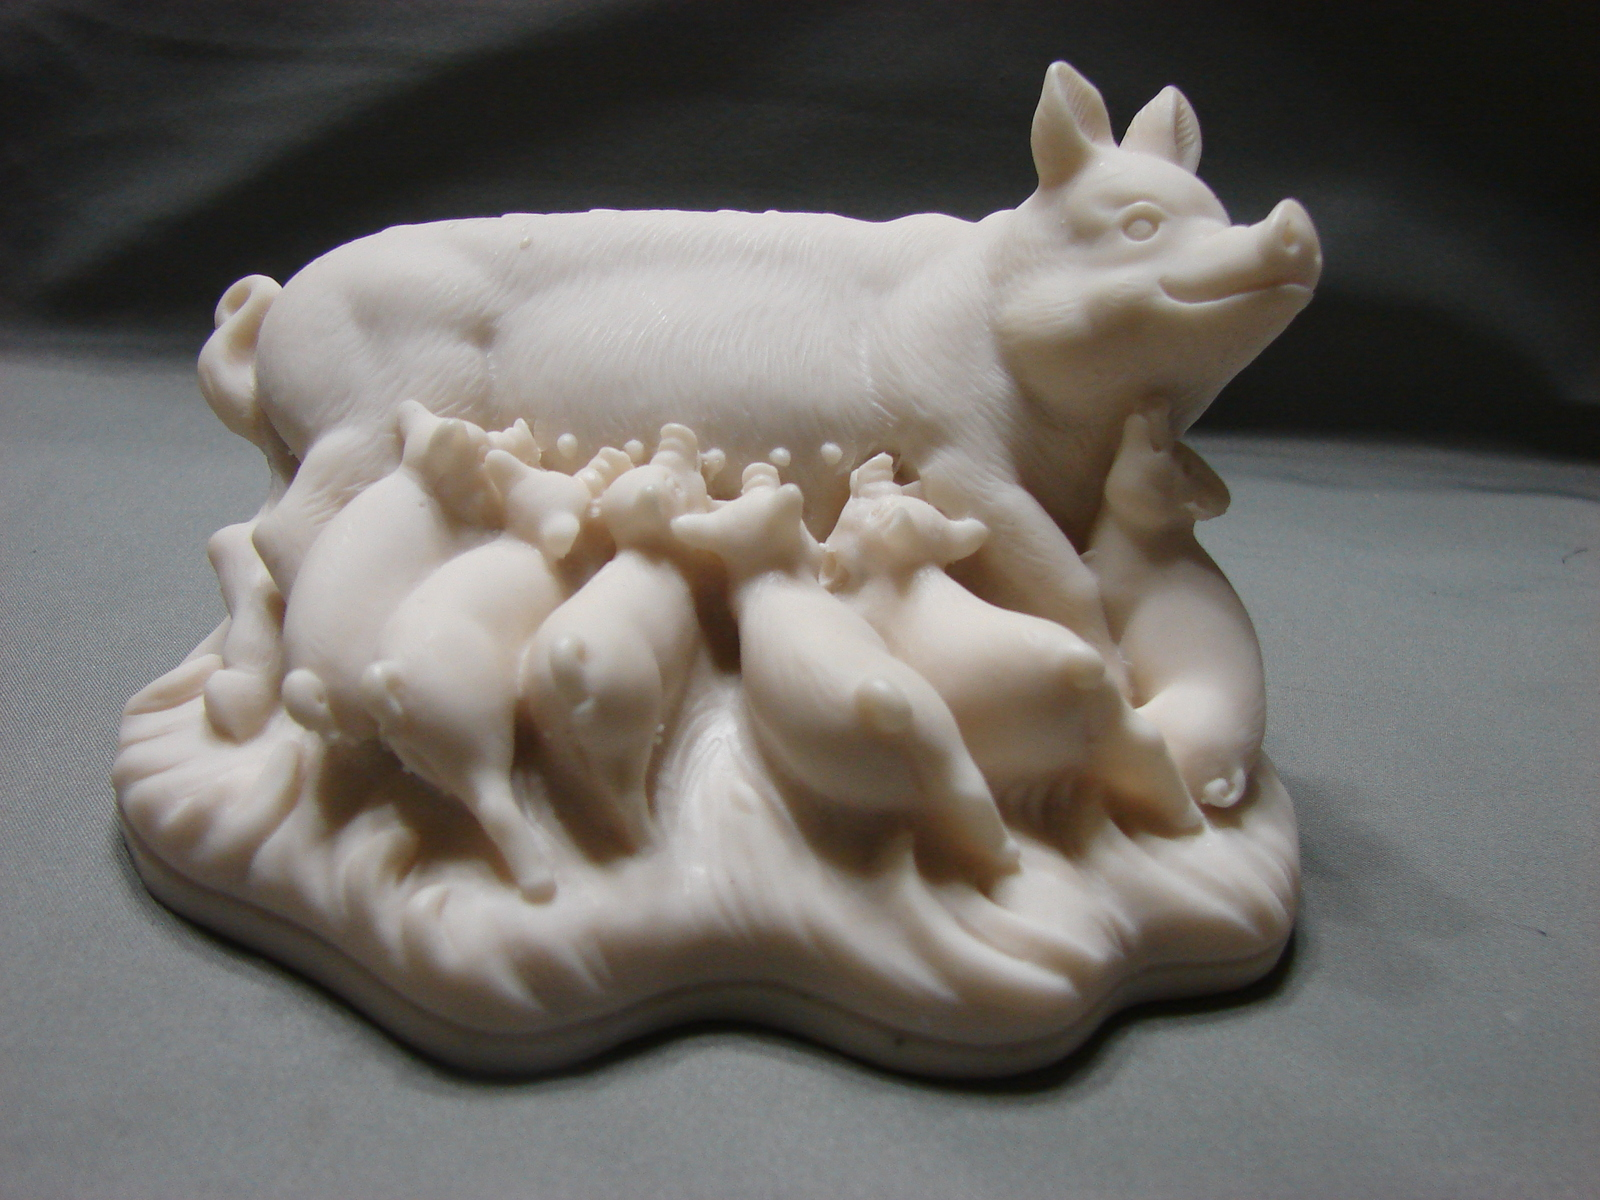 Suckling Pigs F.A.R.O.  5 inch Wide Figurine made in Italy